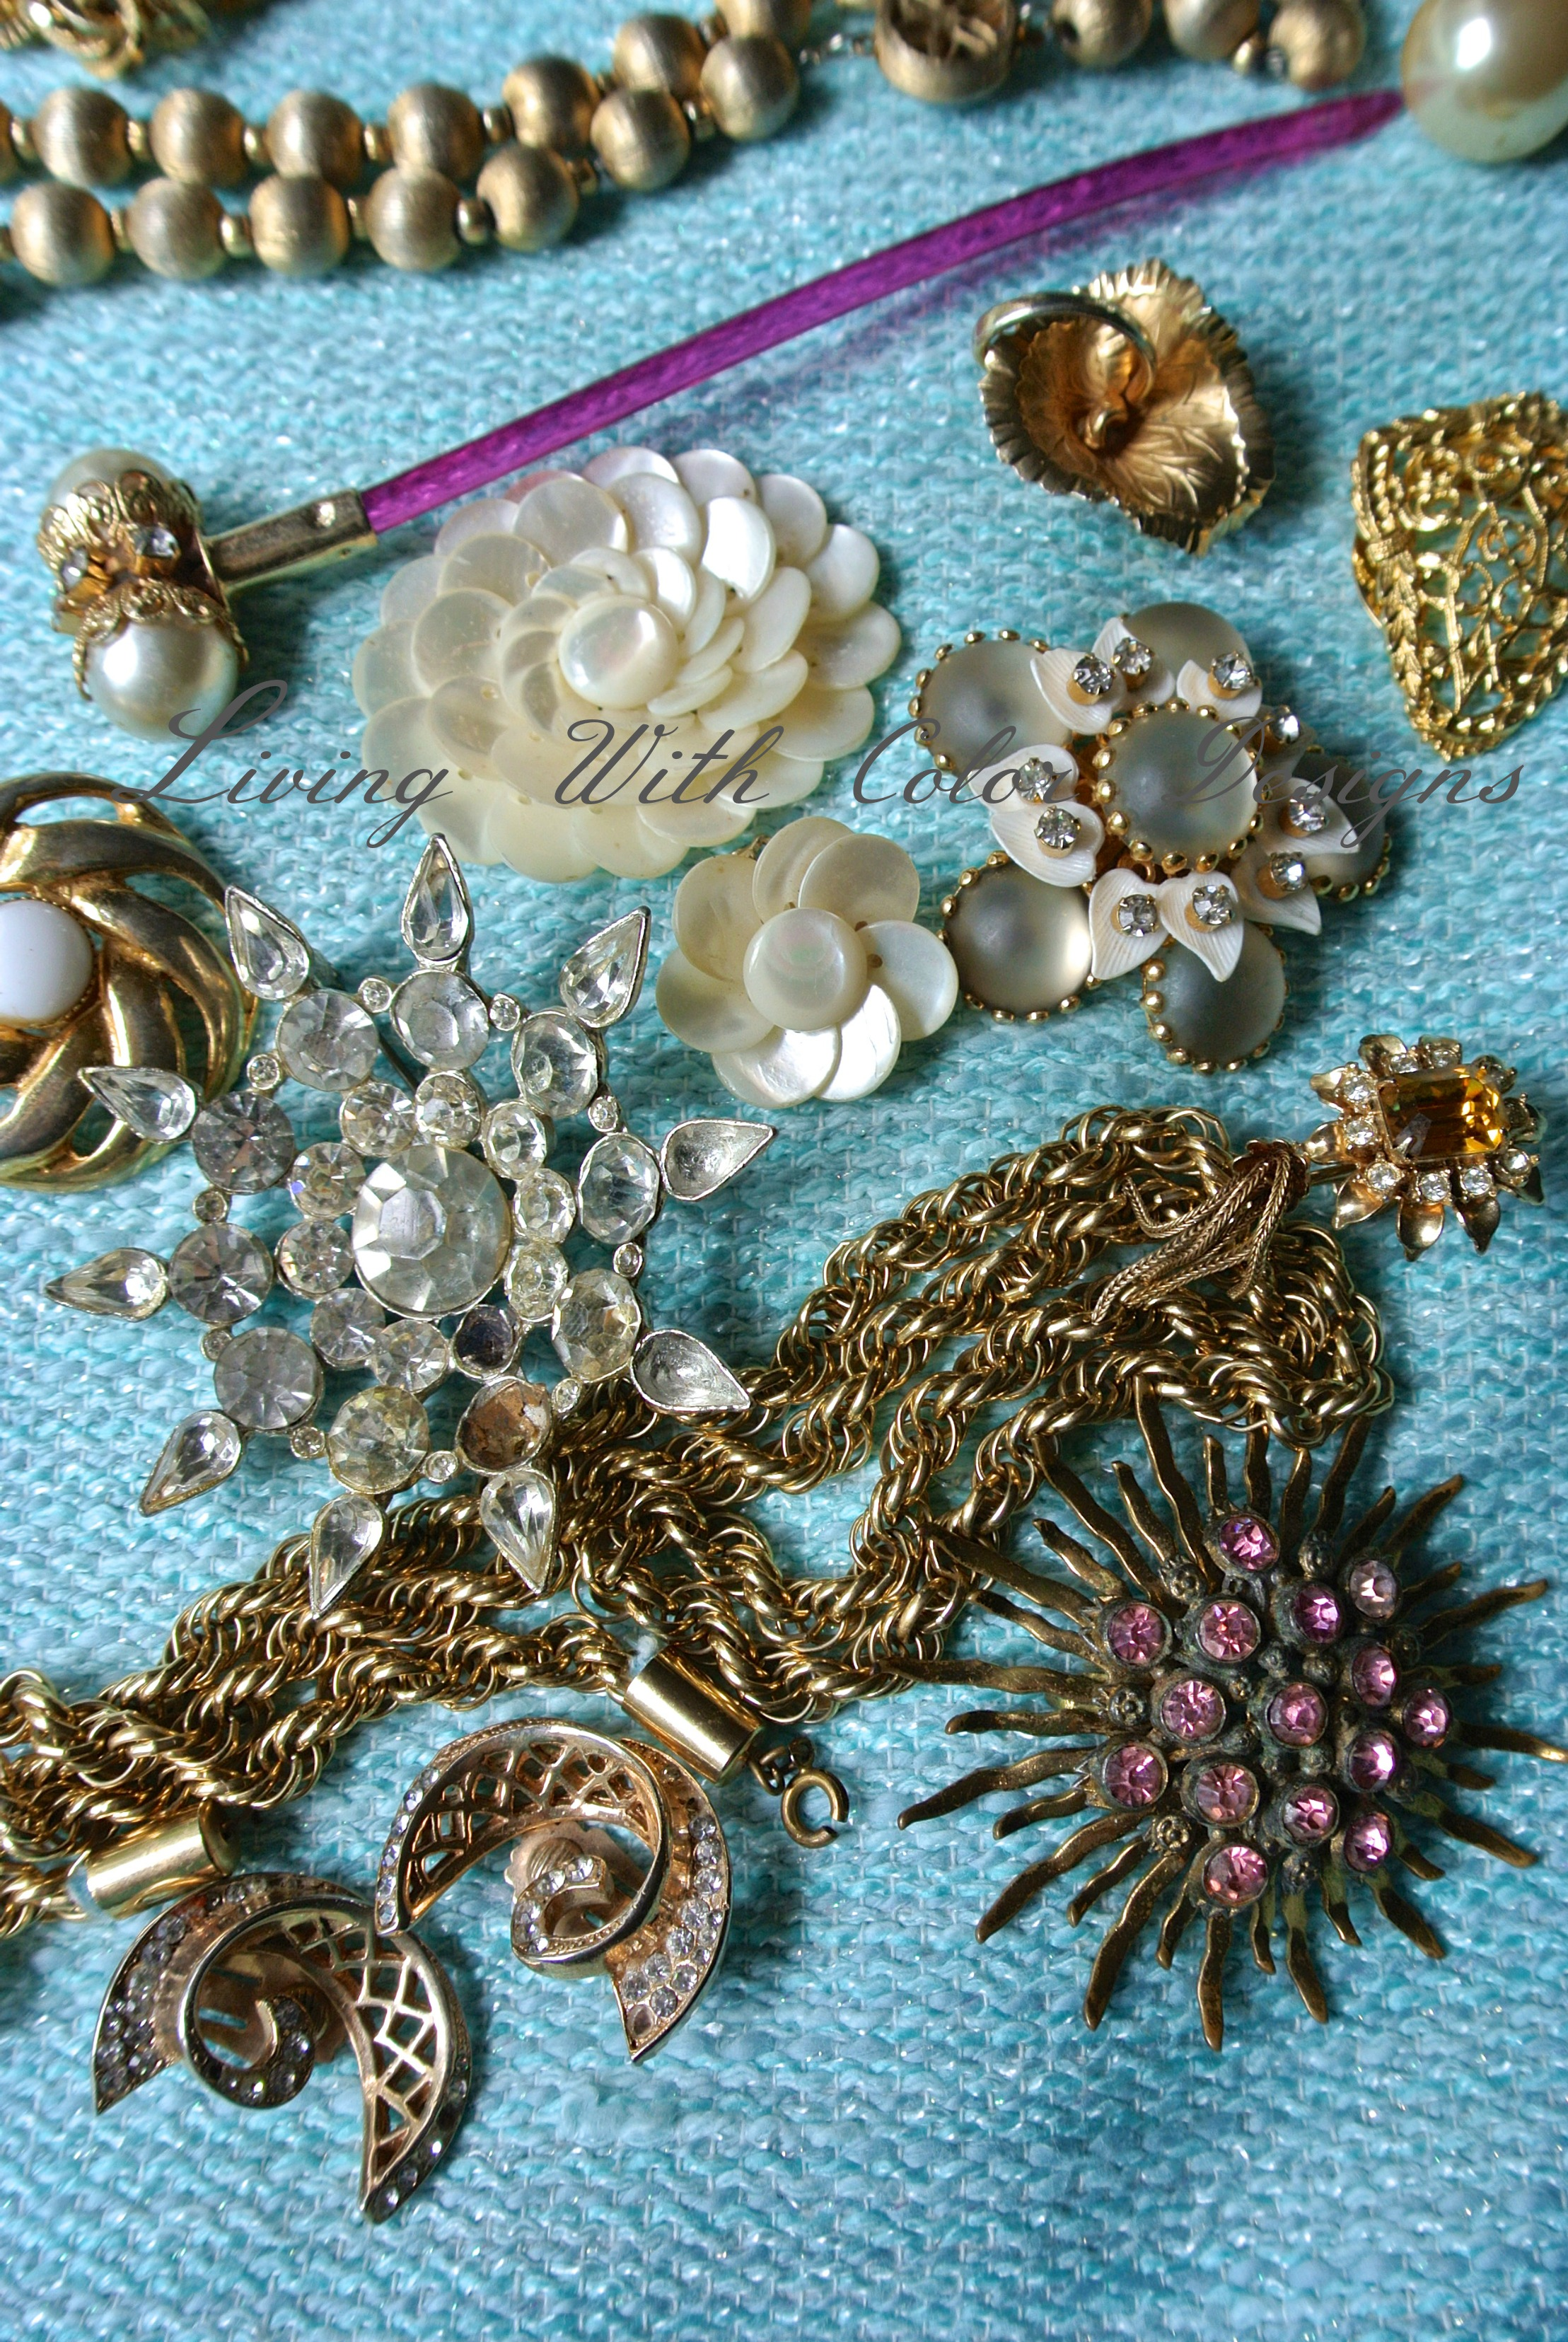 Assortment of costume jewelry livingwithcolordesigns.com & vintage Archives - Living With Color Designs